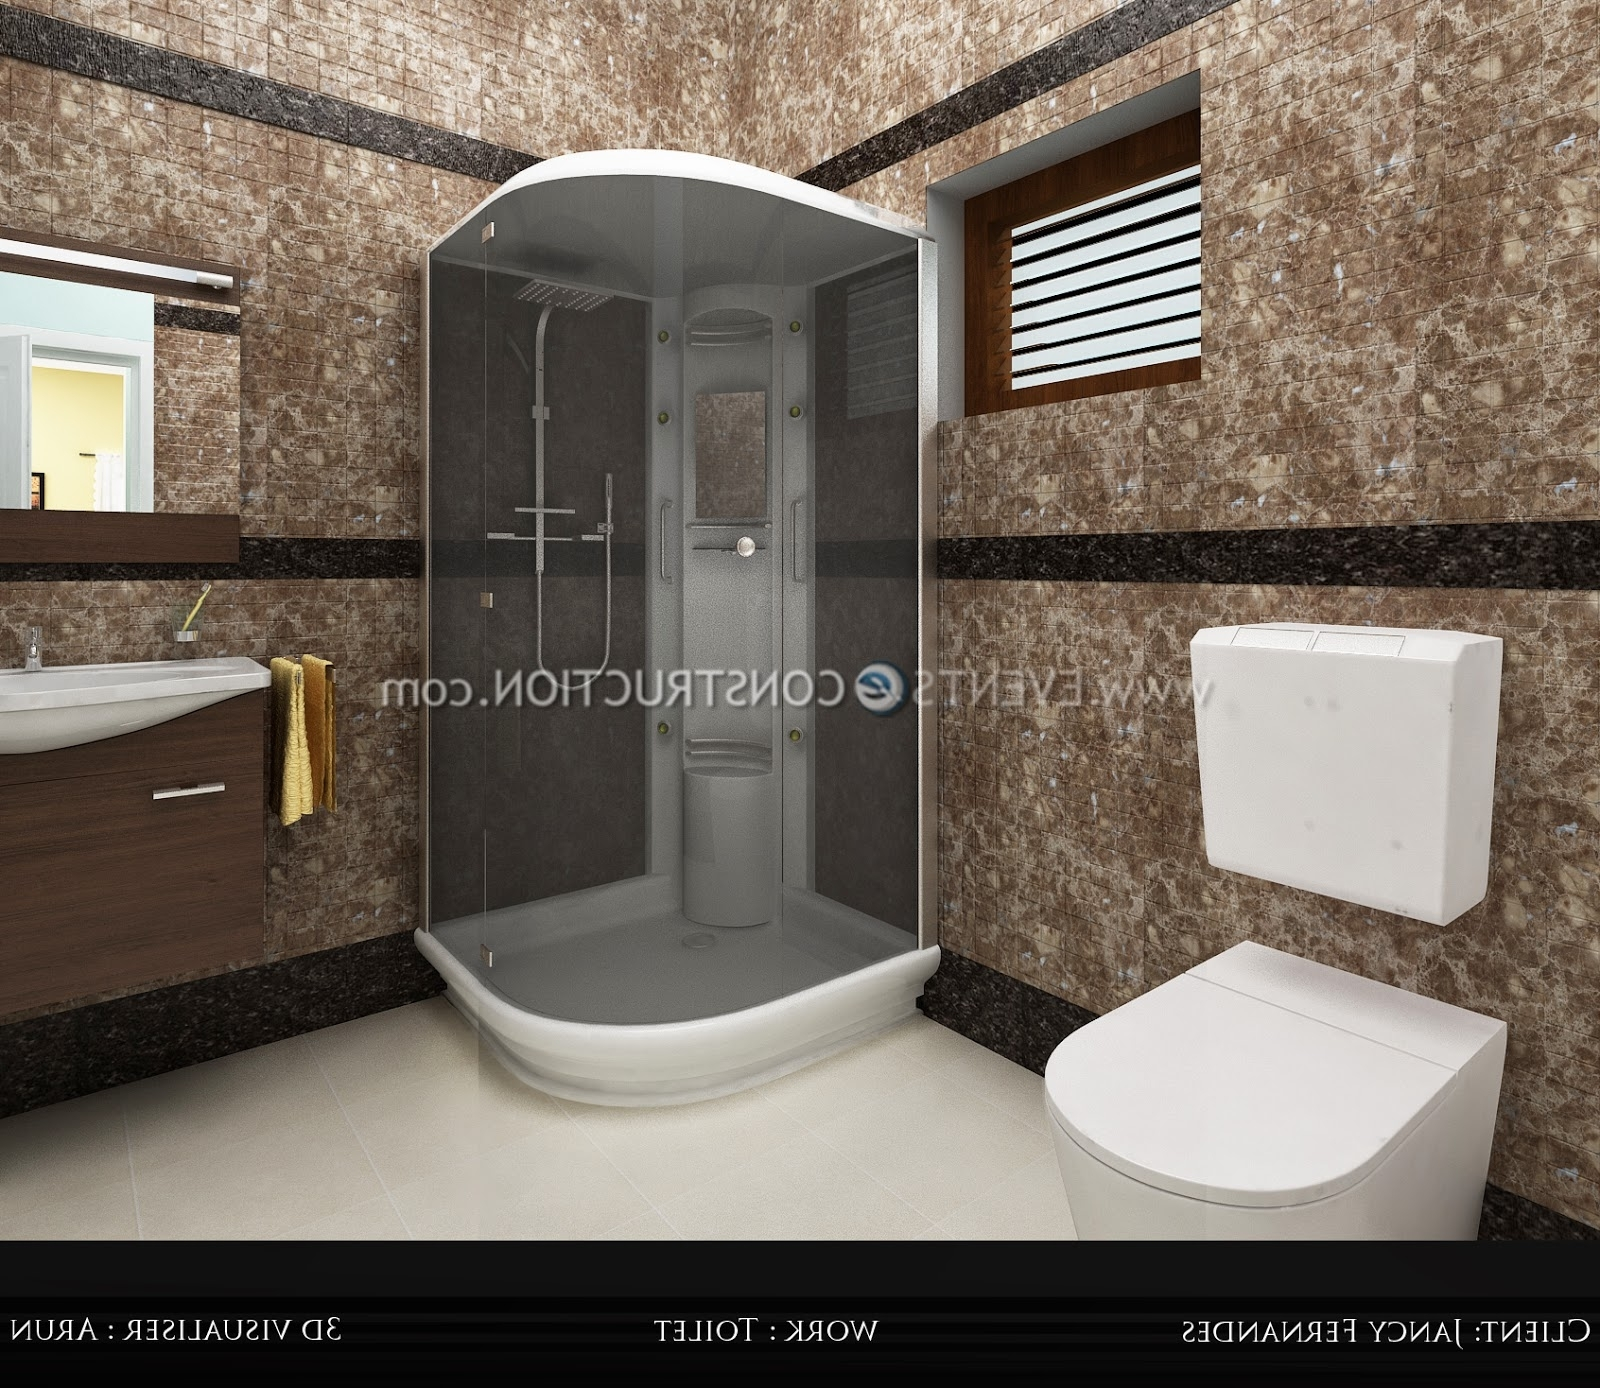 Evens Construction Pvt Ltd: Bathroom Designed For Kerala Home Kerala House Bathroom Designs